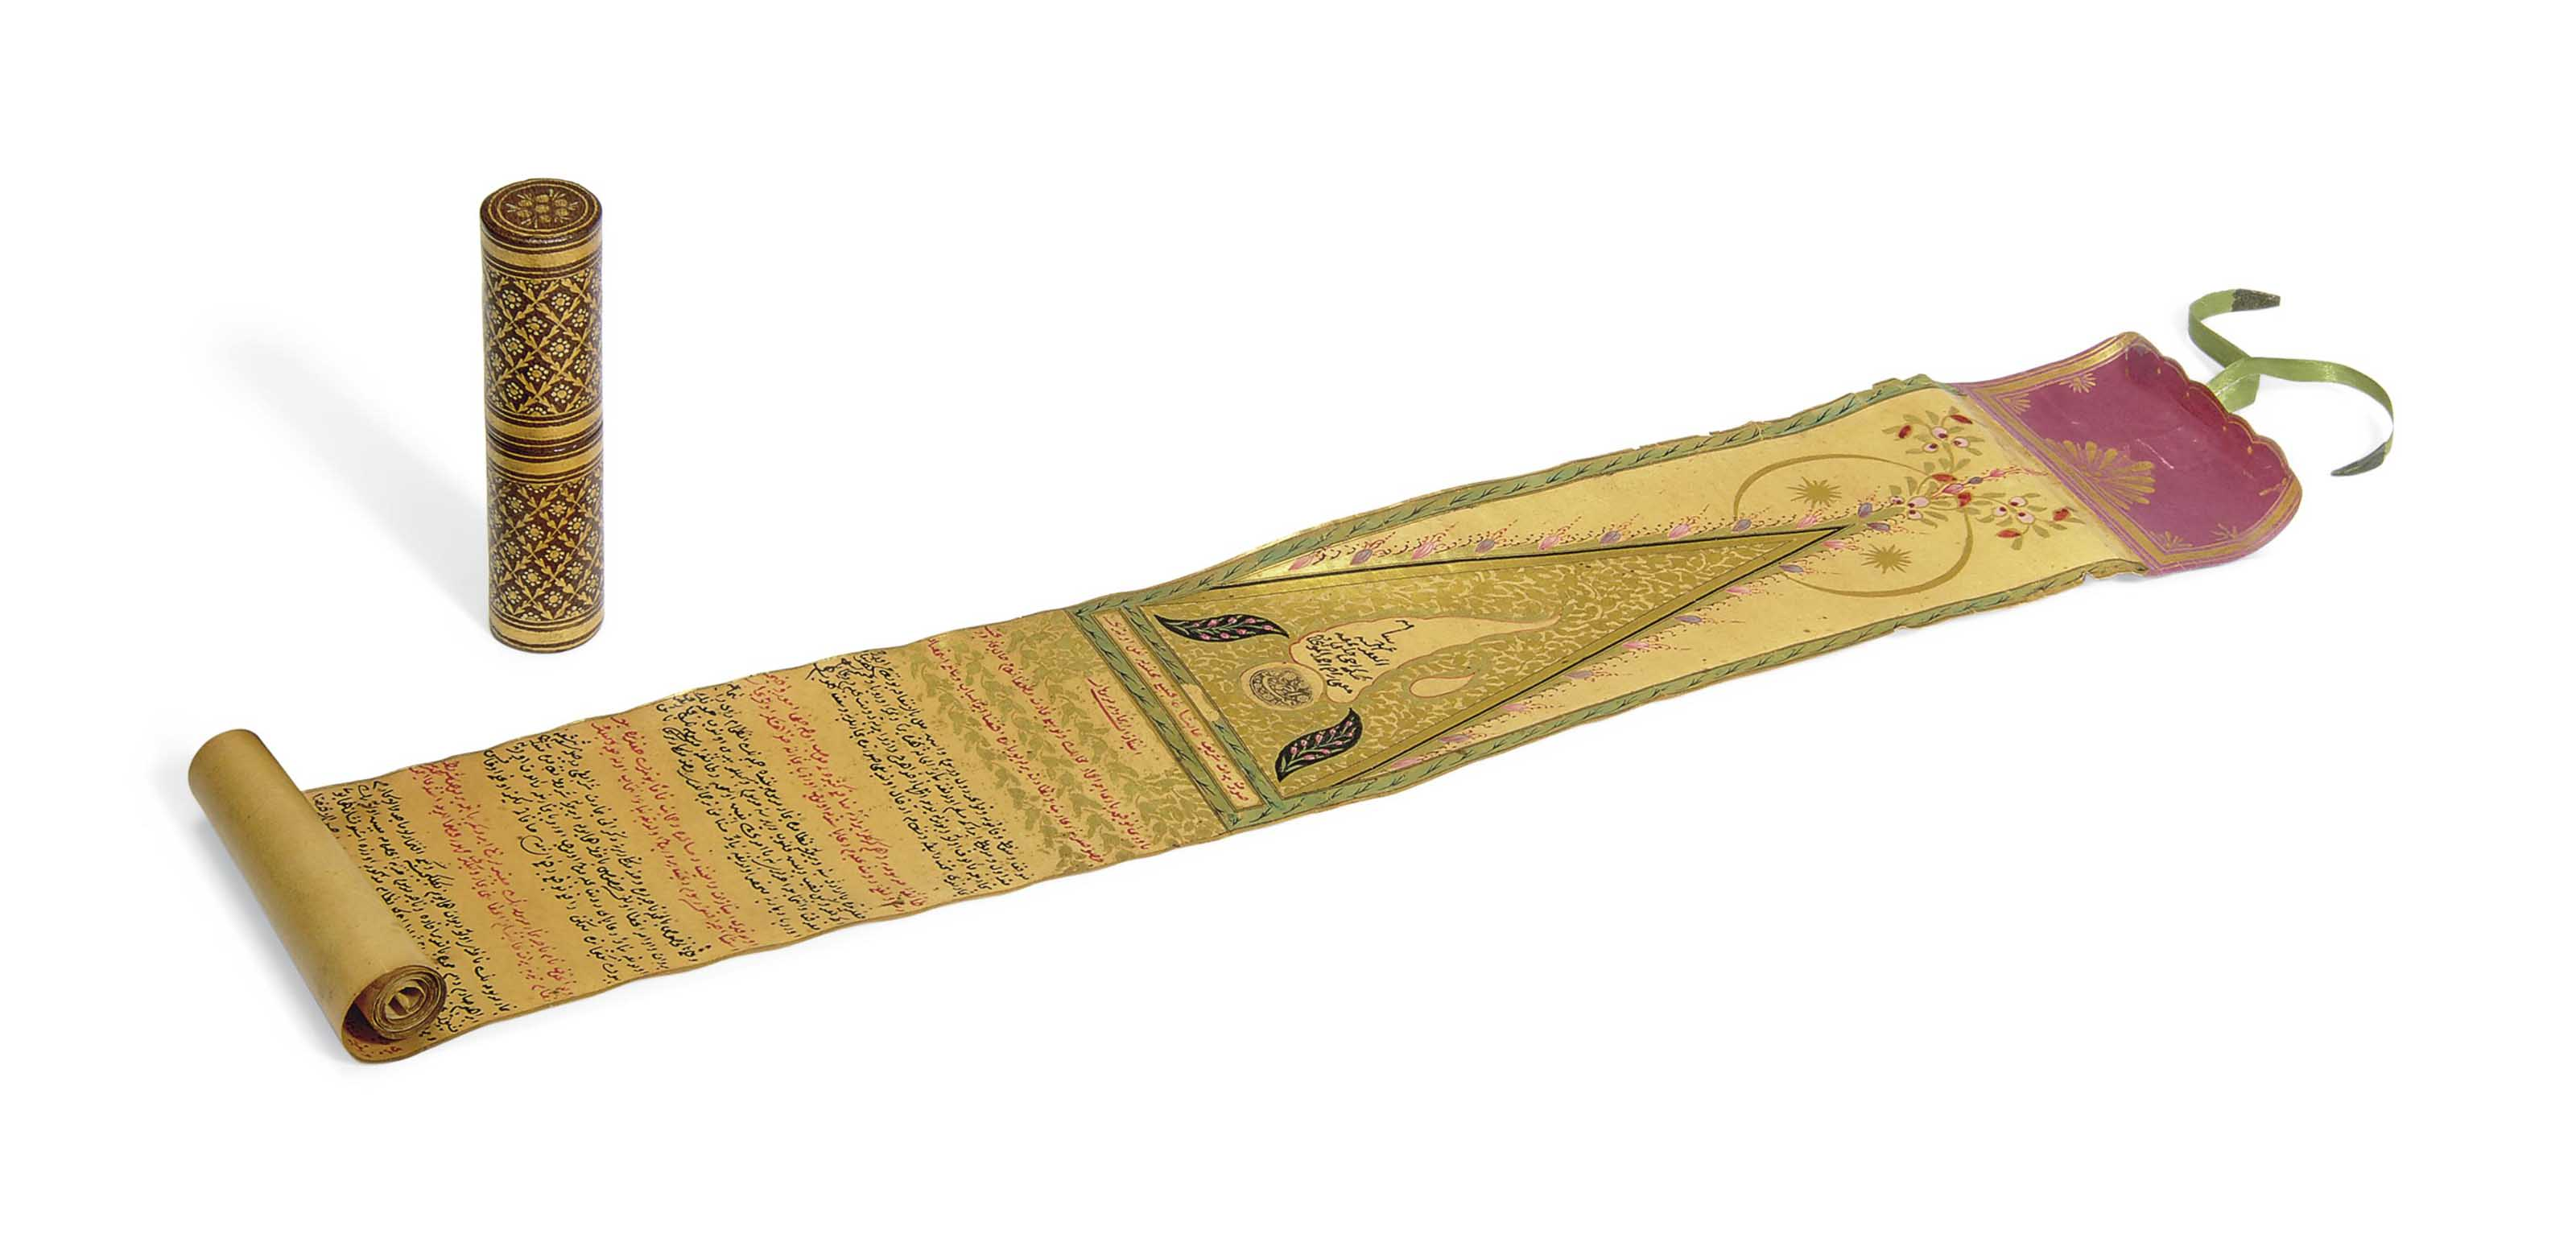 AN OTTOMAN SCROLL WITH ITS CAS